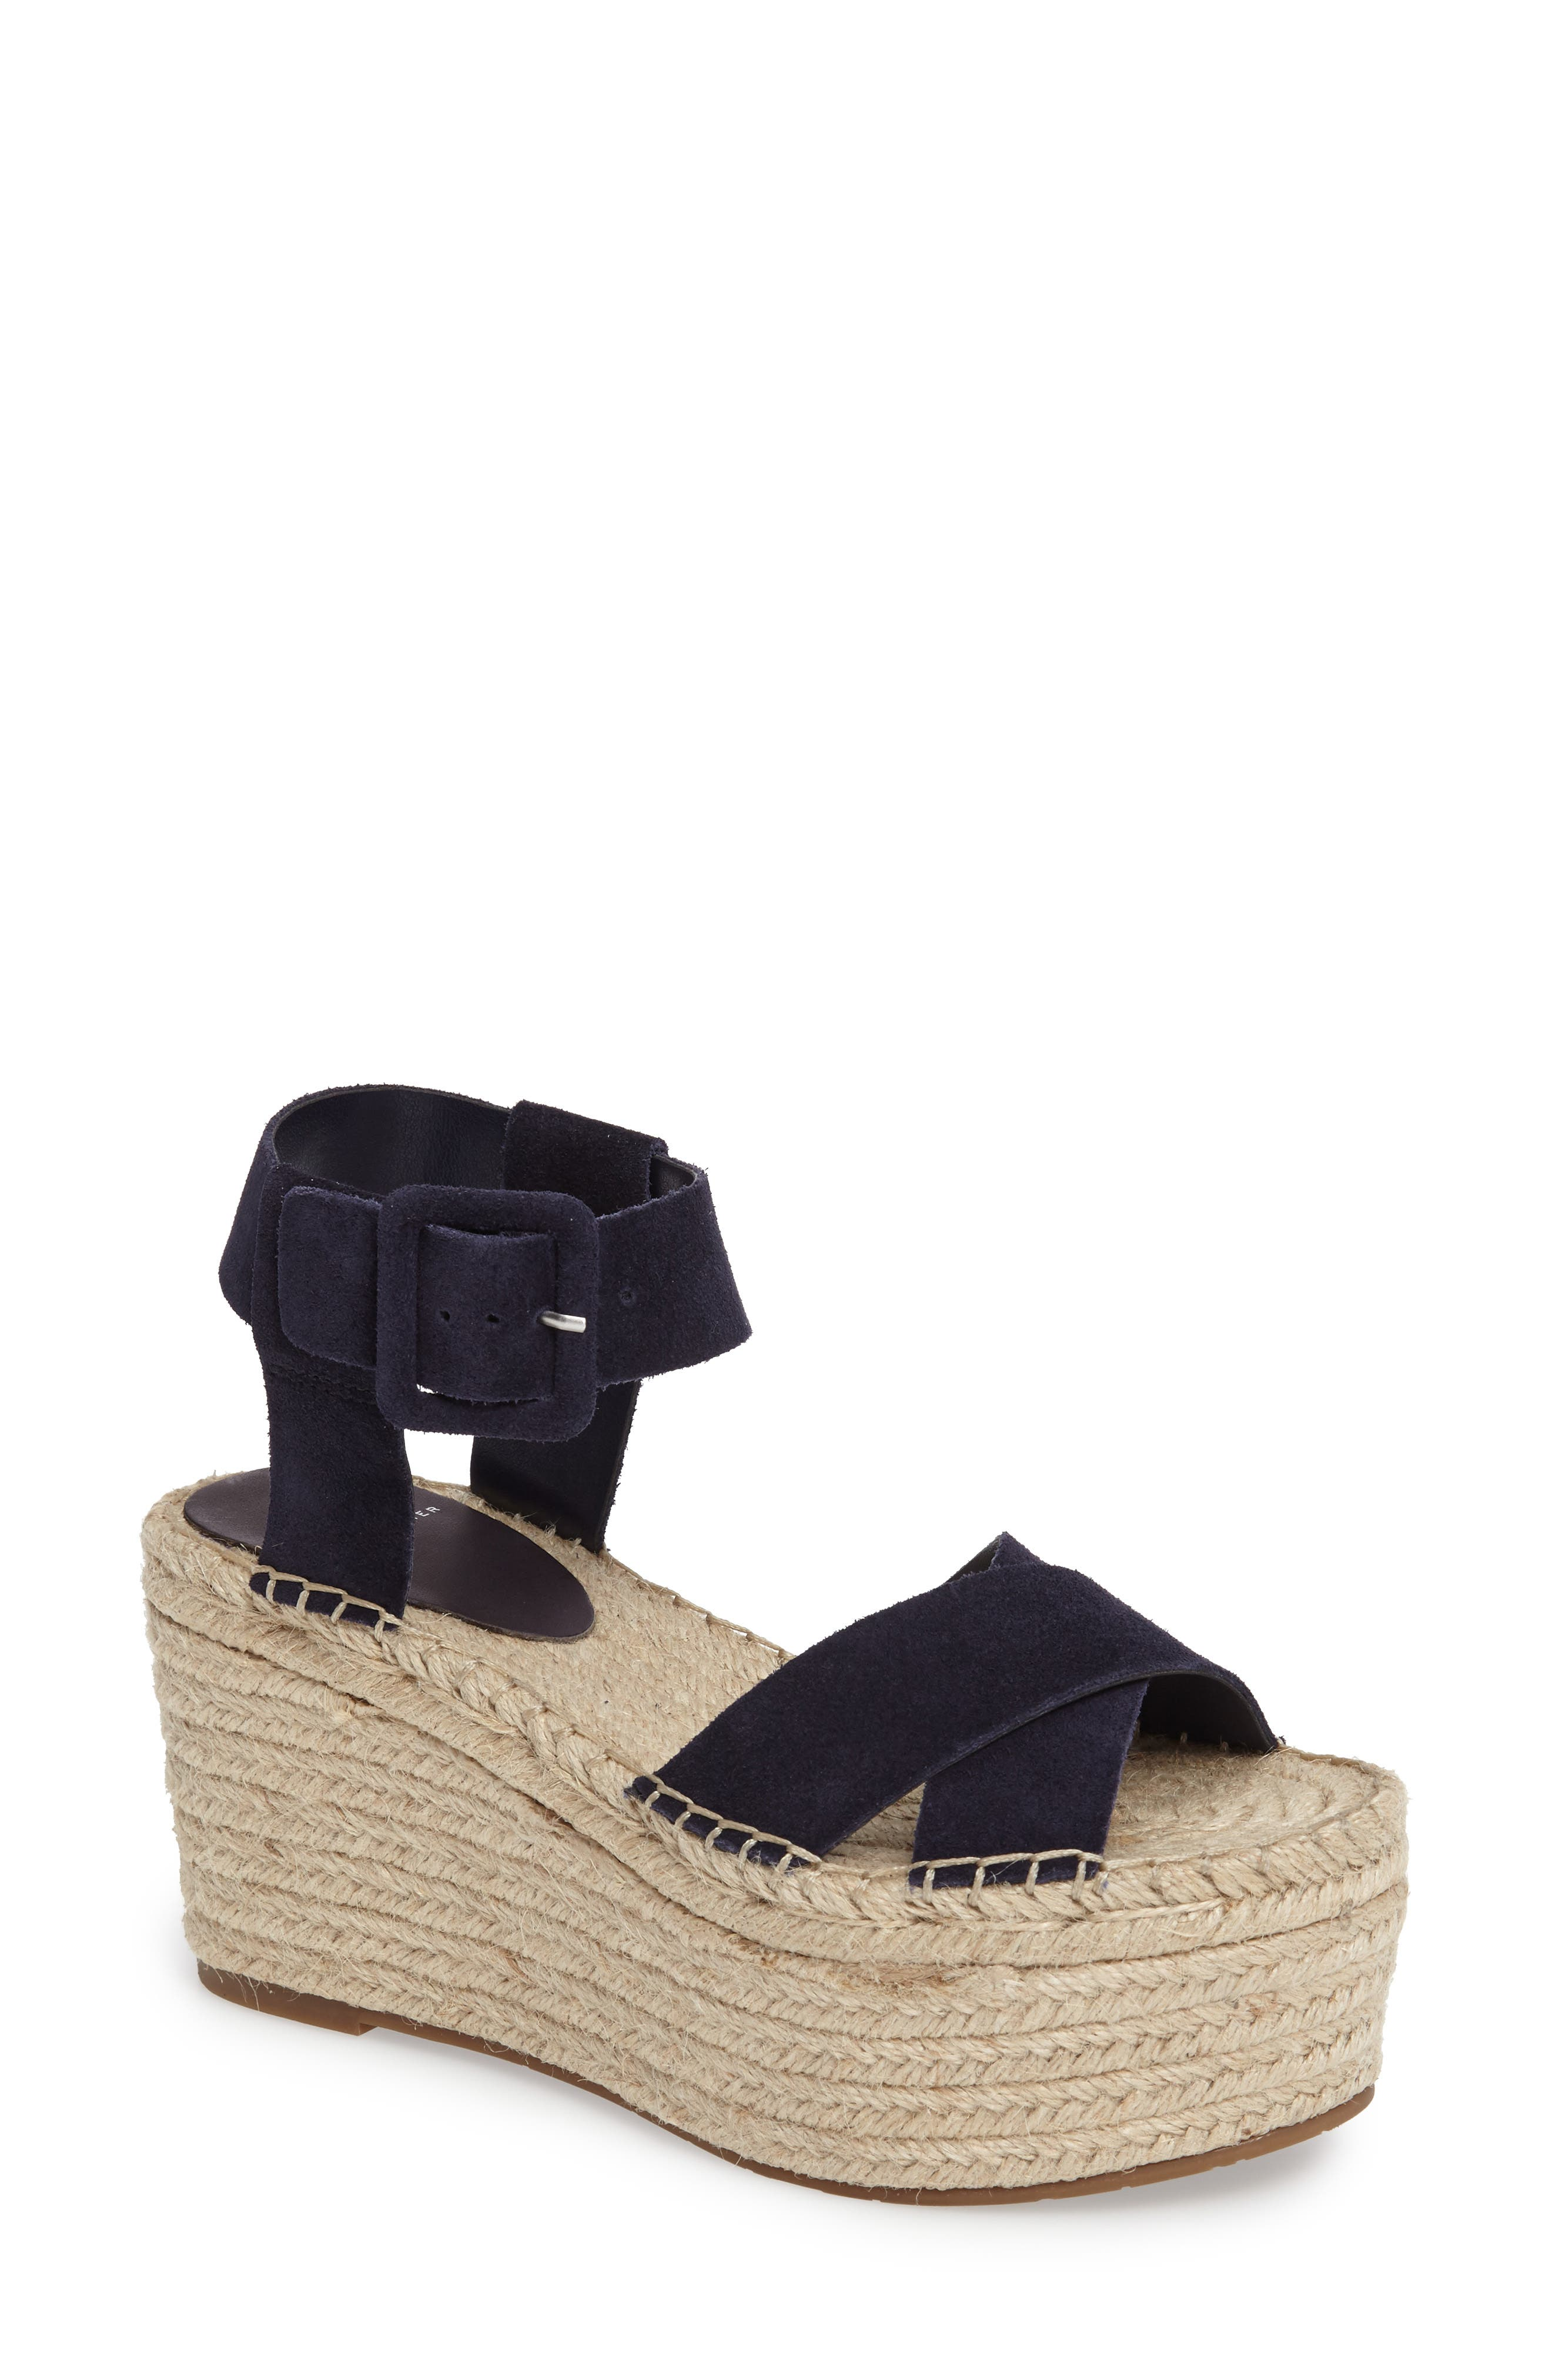 'Randall' Platform Wedge,                             Main thumbnail 1, color,                             NAVY SUEDE